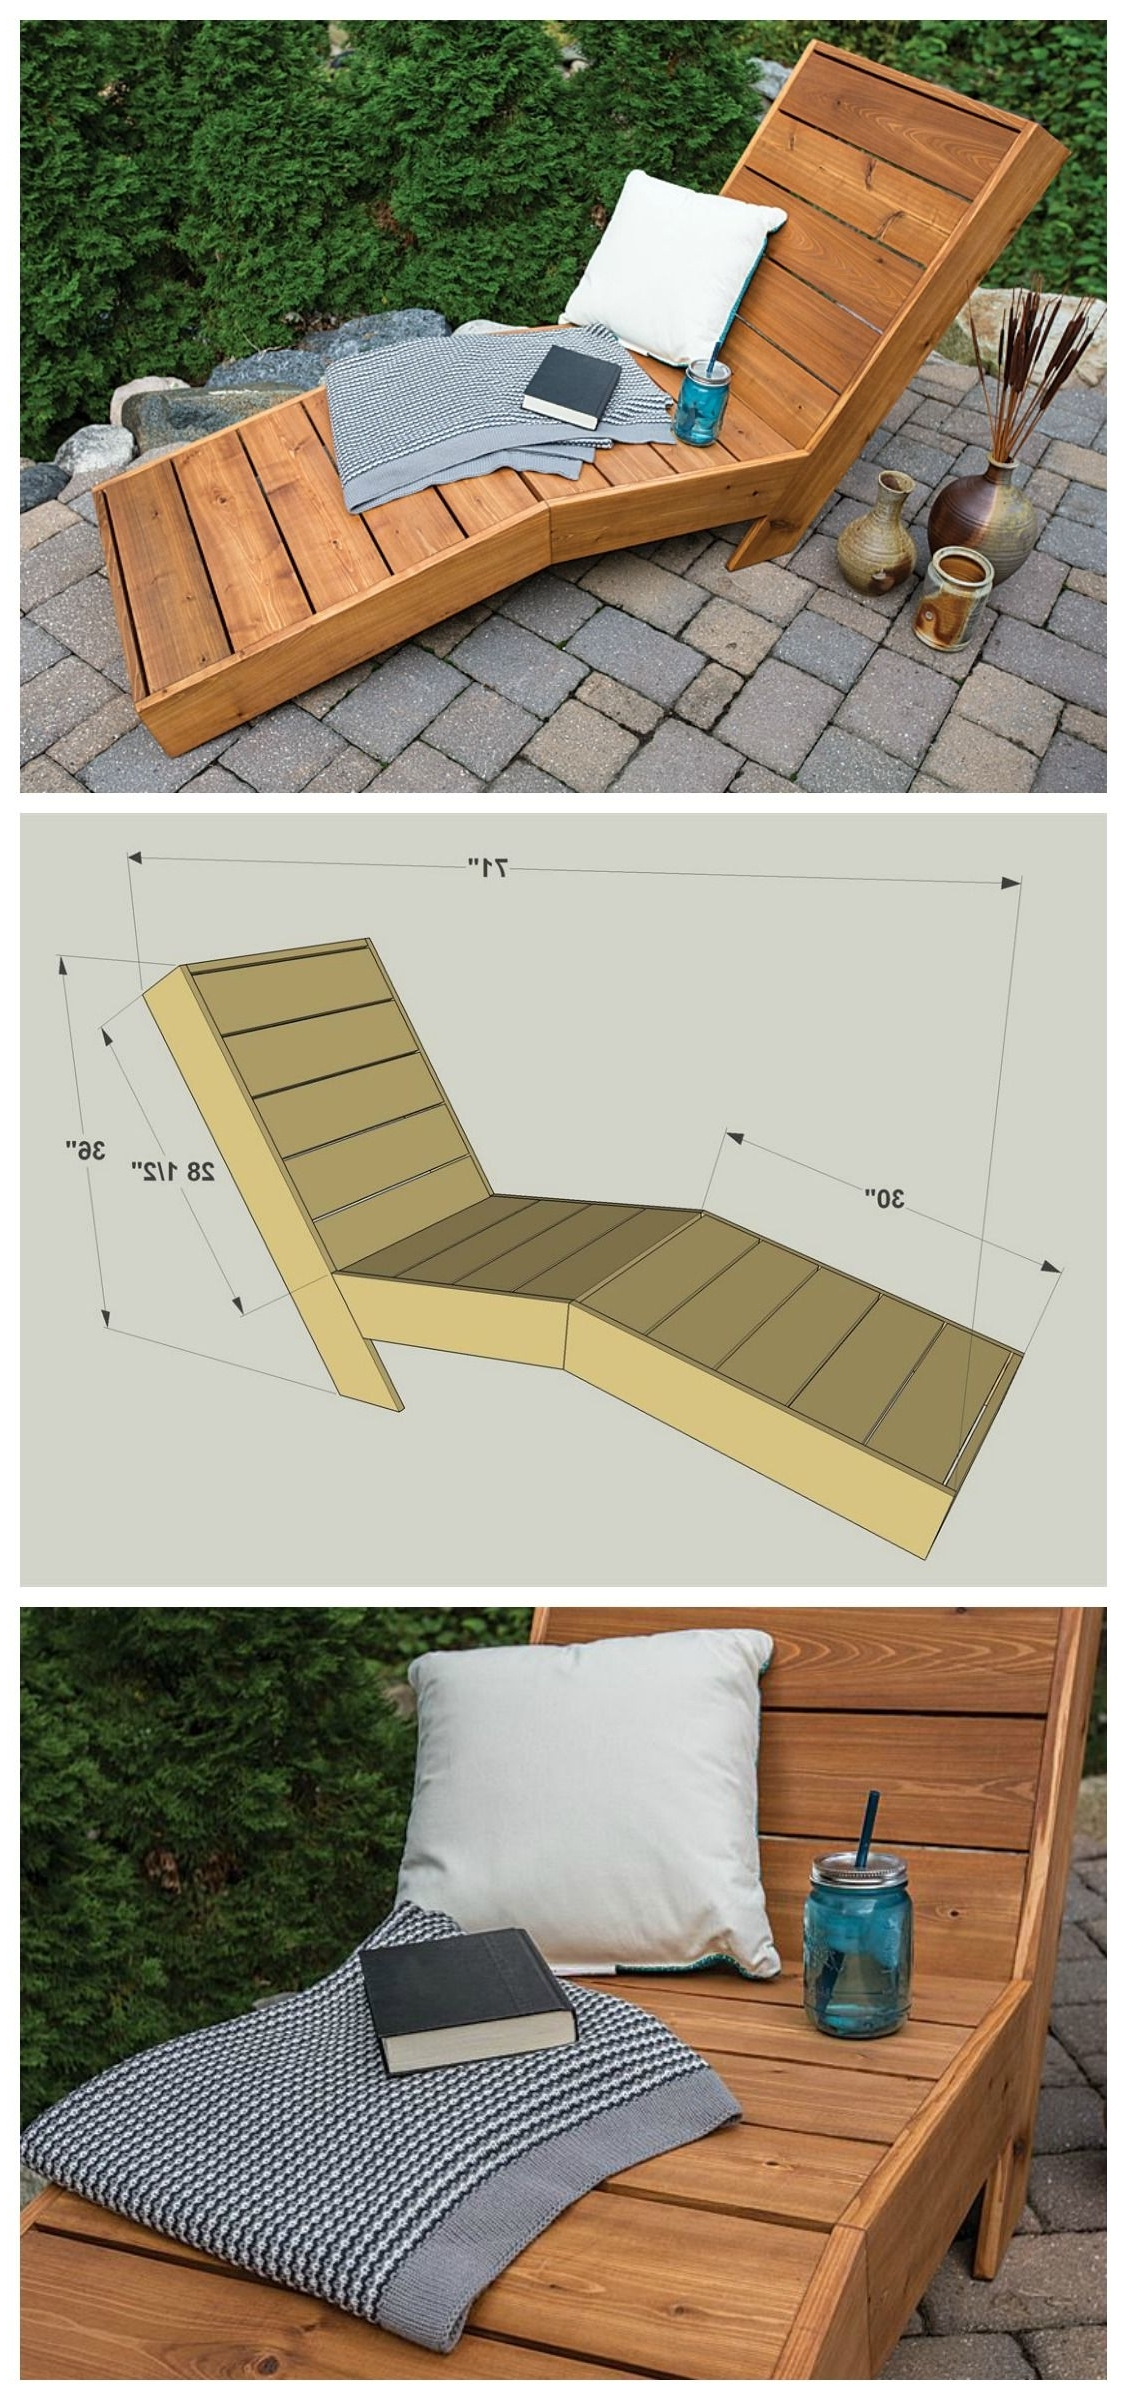 Chaise Lounge Patio Furniture Repair: 15 Best Diy Outdoor Chaise Lounge Chairs